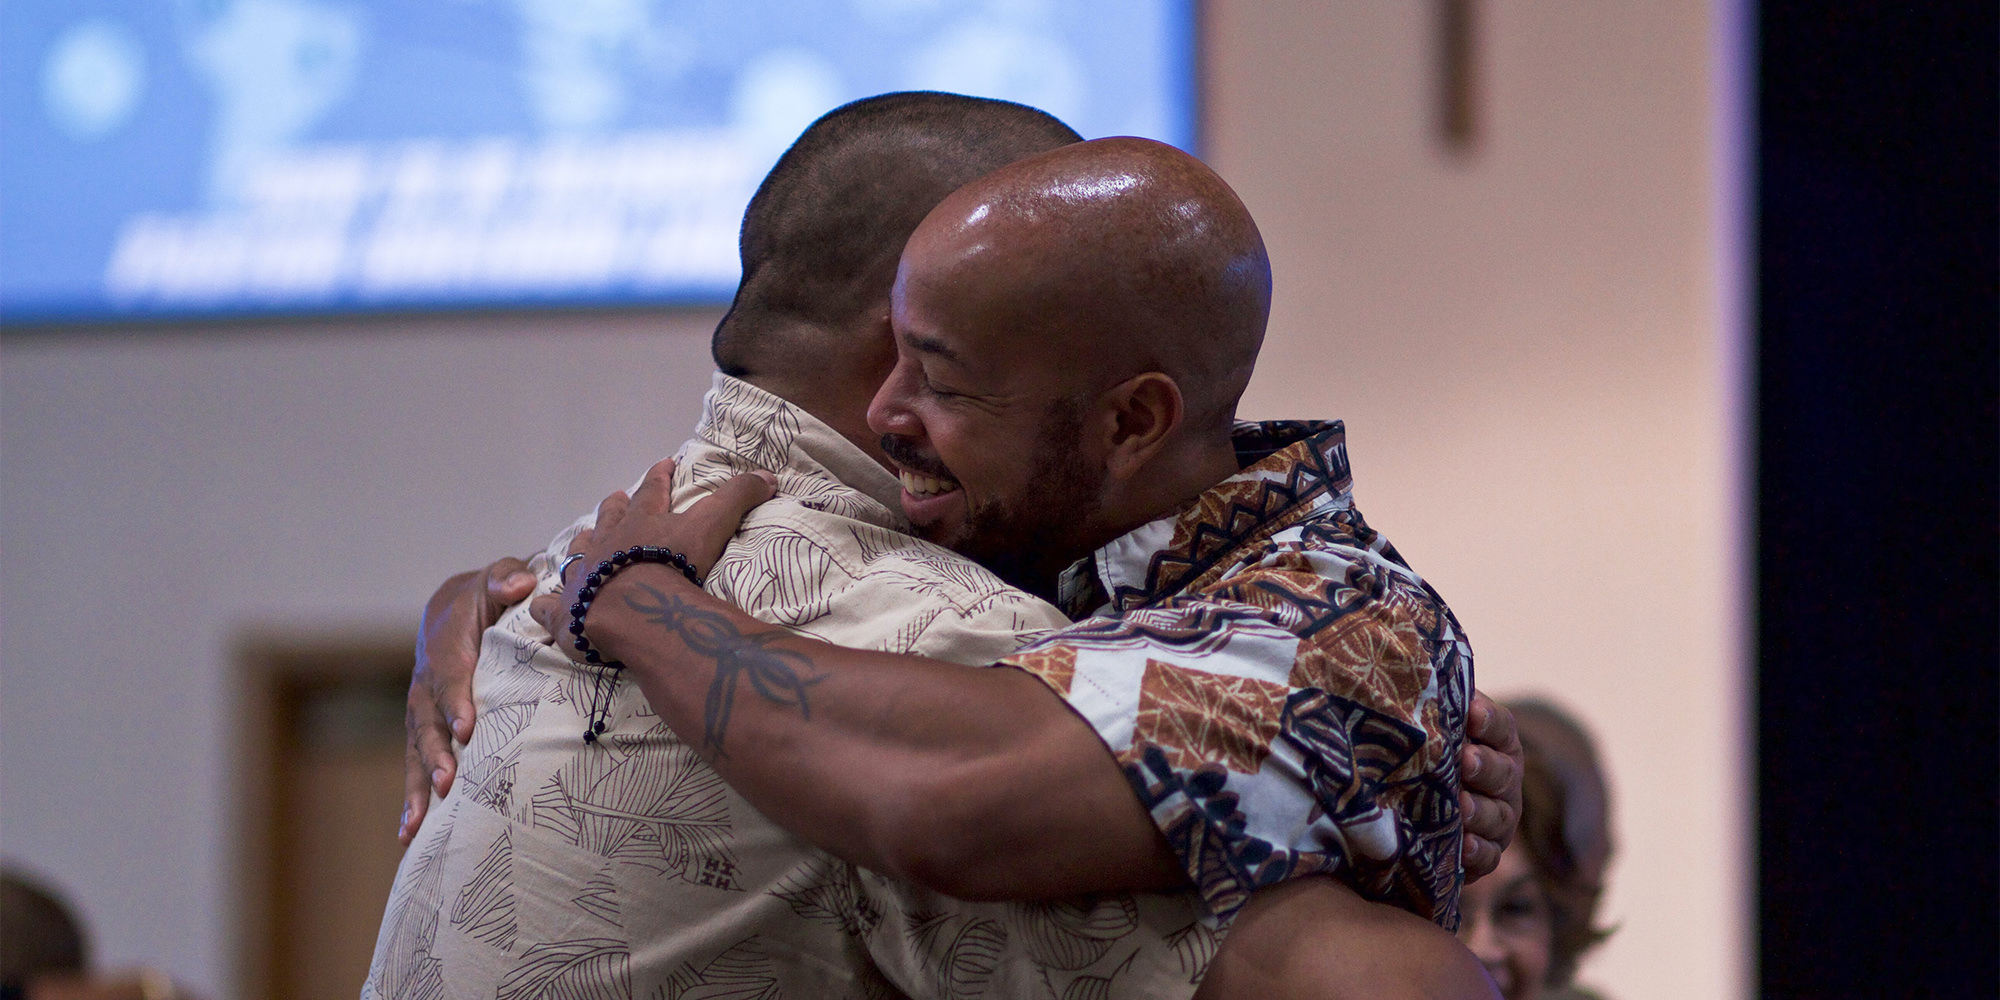 Two African American men at a public event, giving each other a hug.